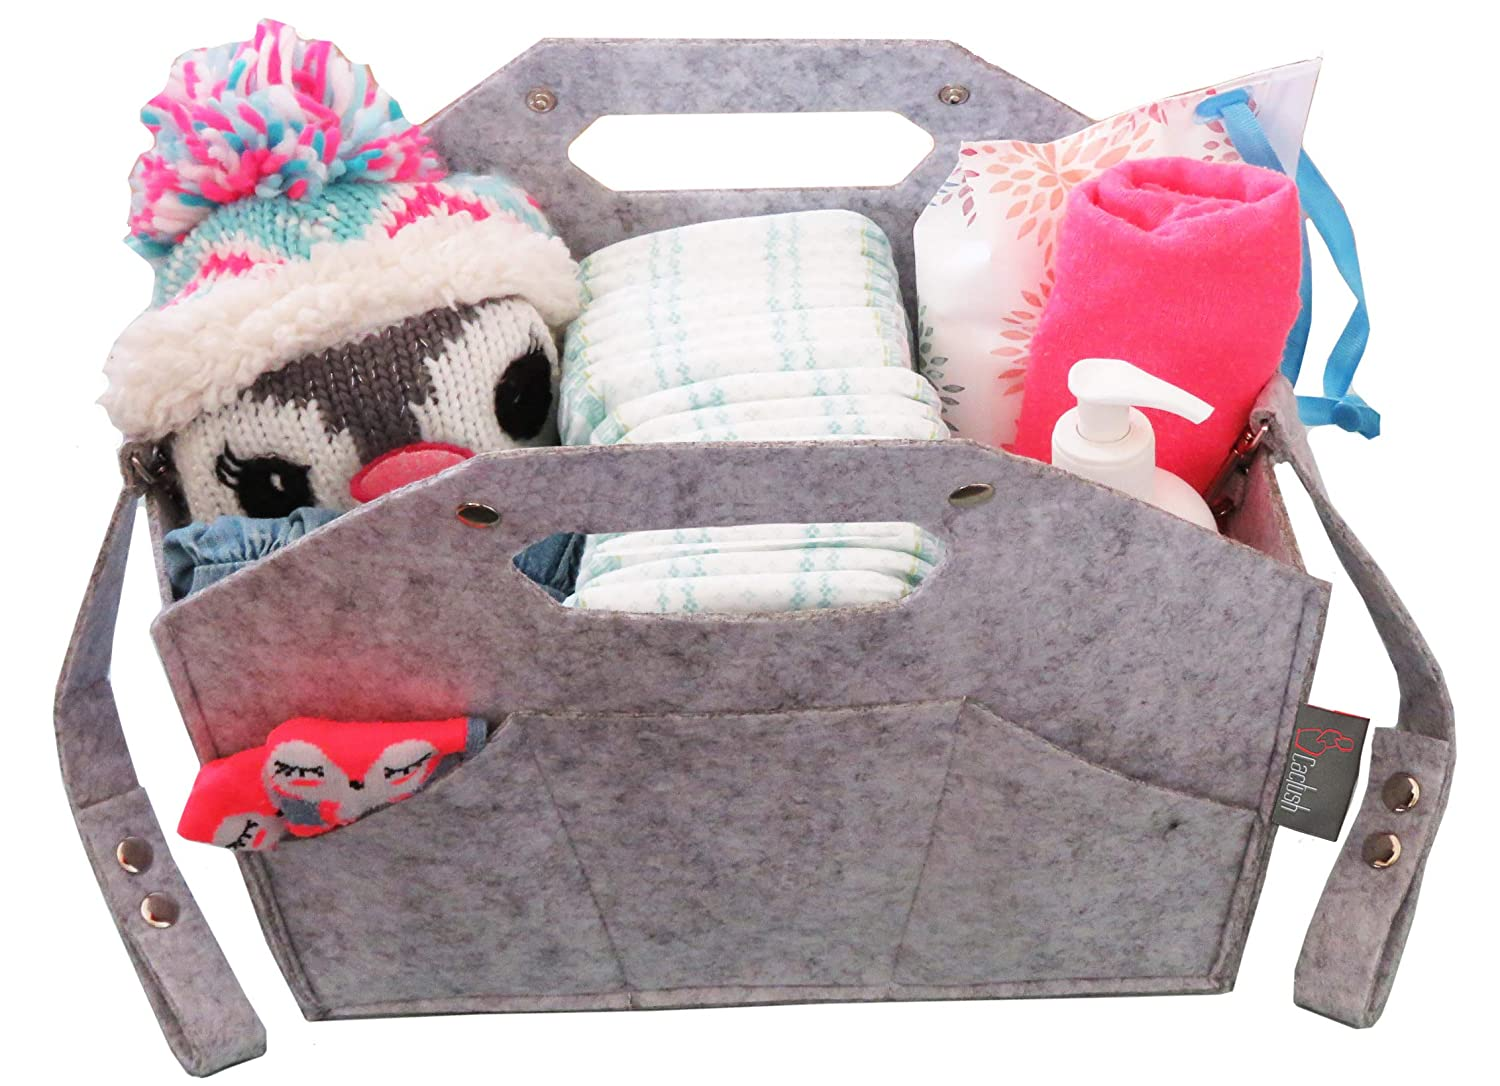 Cactush Baby Diaper Caddy Organizer Adjustable Hanging Straps & Snaps Crib, Stroller, Changing Table,Nursery, Car - Best